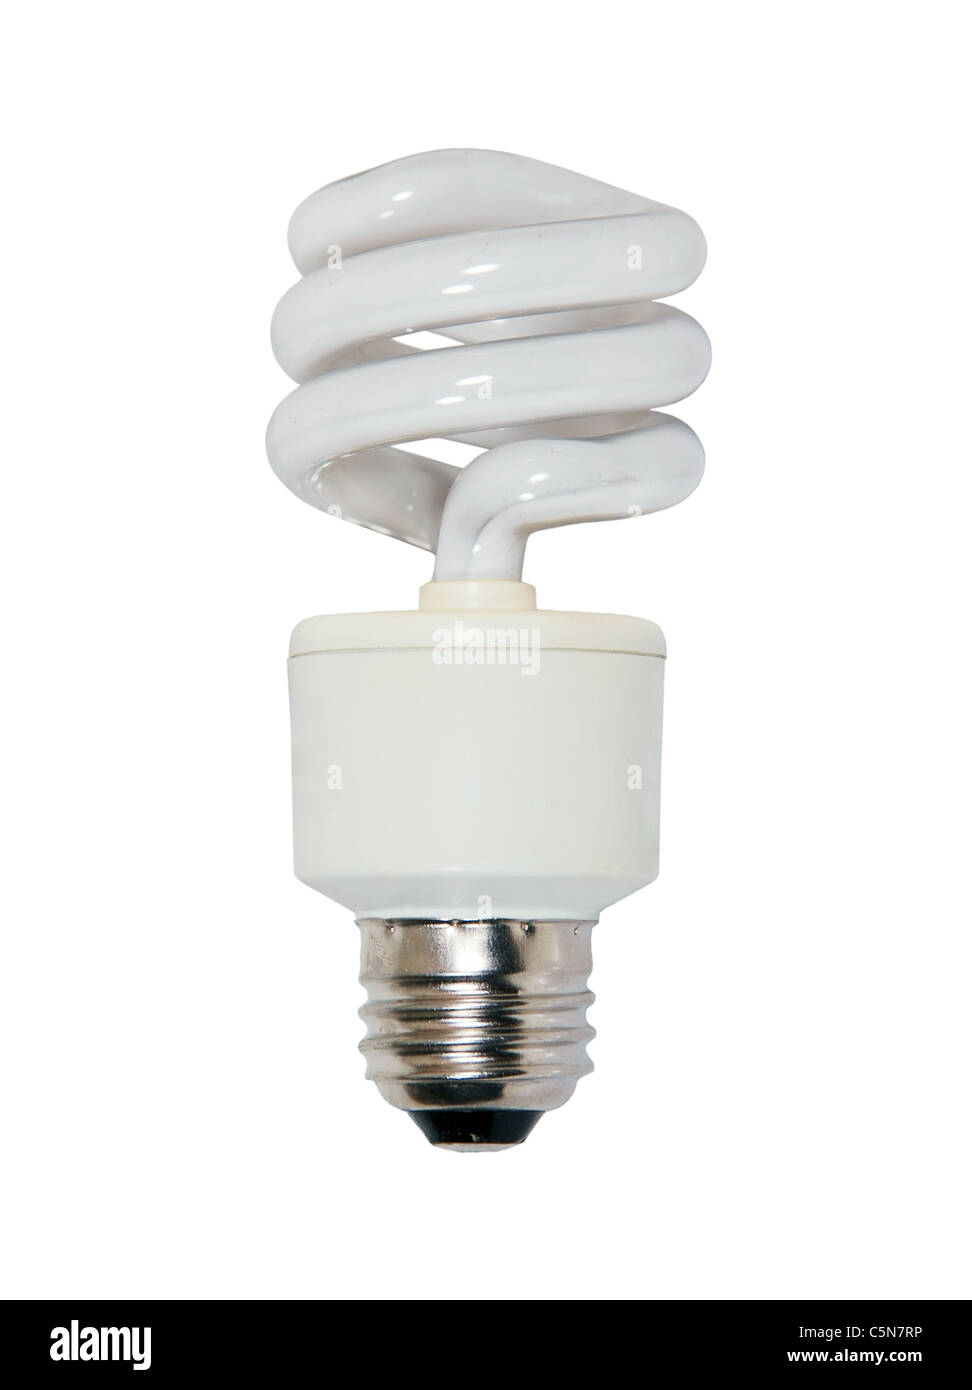 Spiral glass bulb light bulb used to light a room efficiently - Stock Image